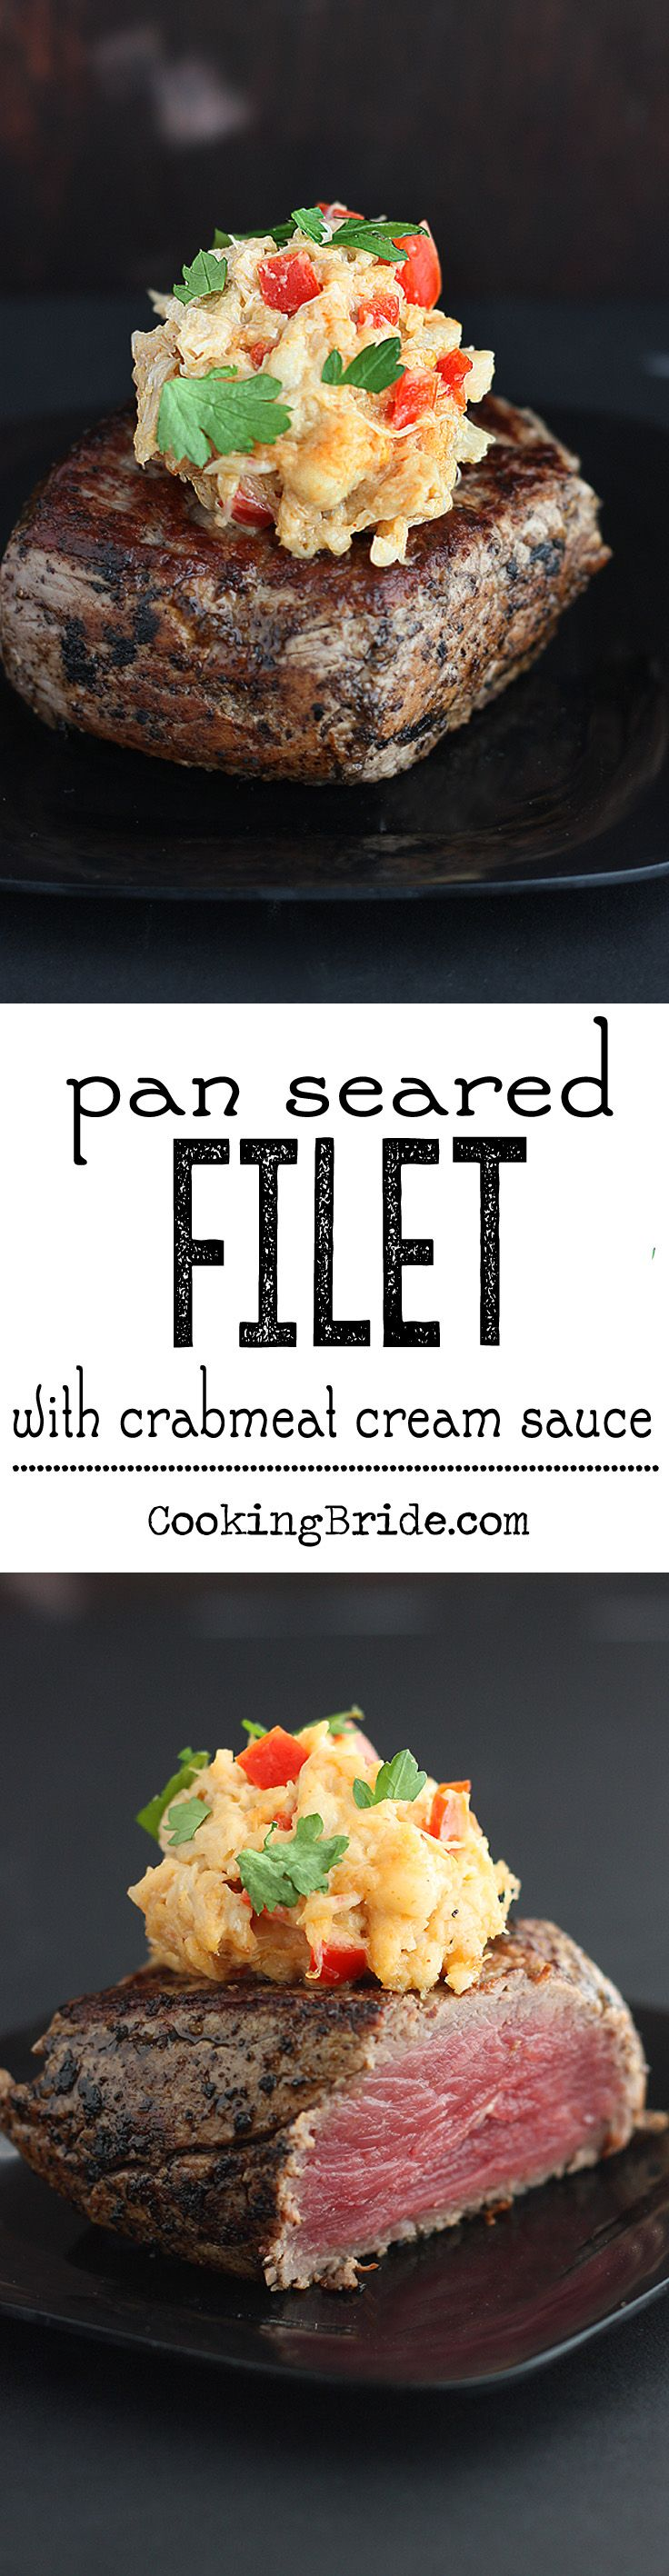 Tender pan seared filet mignon is finished in the oven and topped with a creamy crab meat sauce.